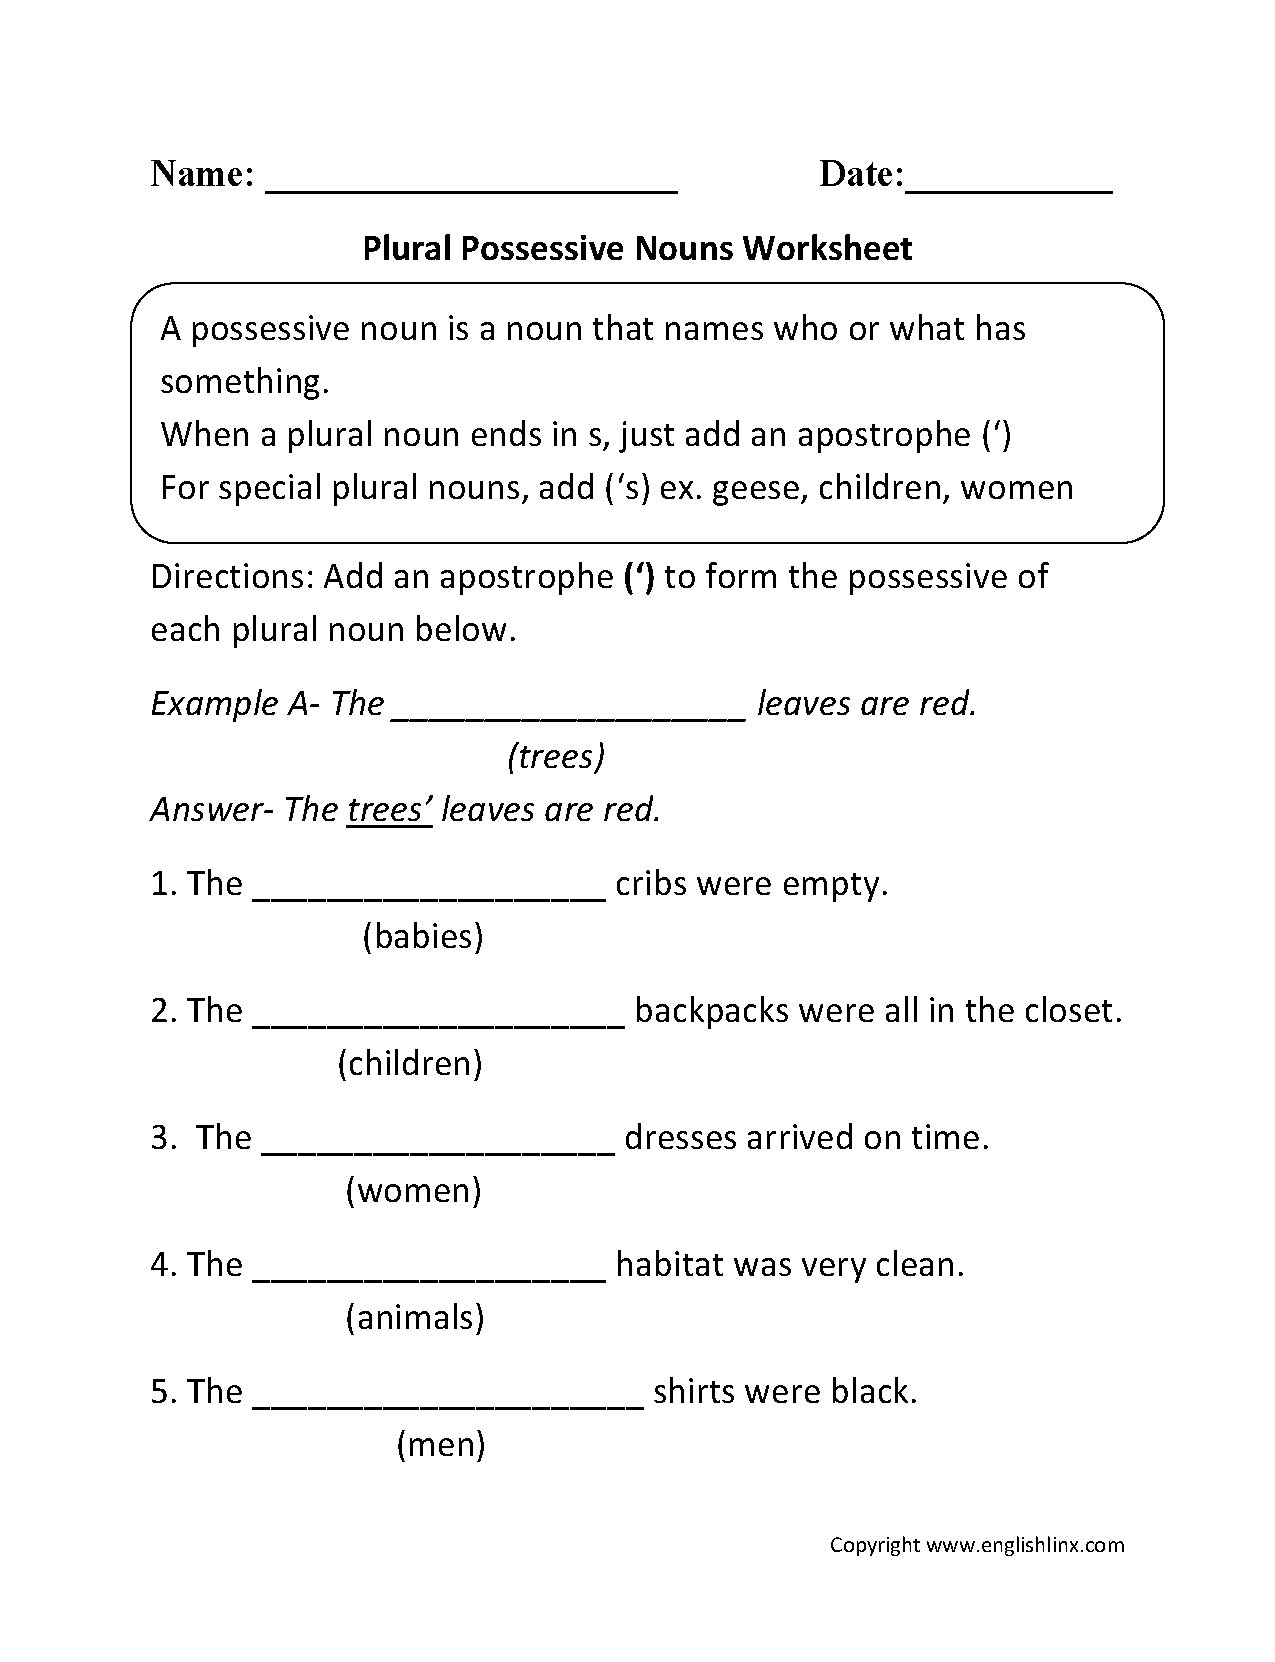 Aldiablosus  Prepossessing Nouns Worksheets  Possessive Nouns Worksheets With Magnificent Possessive Nouns Worksheets With Nice Cell Activity Worksheet Also Past And Present Worksheets For First Grade In Addition Conjunction Worksheets For Middle School And Multiplication Division Addition Subtraction Worksheets As Well As Grade  Integer Worksheets Additionally Art Worksheets For Kindergarten From Englishlinxcom With Aldiablosus  Magnificent Nouns Worksheets  Possessive Nouns Worksheets With Nice Possessive Nouns Worksheets And Prepossessing Cell Activity Worksheet Also Past And Present Worksheets For First Grade In Addition Conjunction Worksheets For Middle School From Englishlinxcom